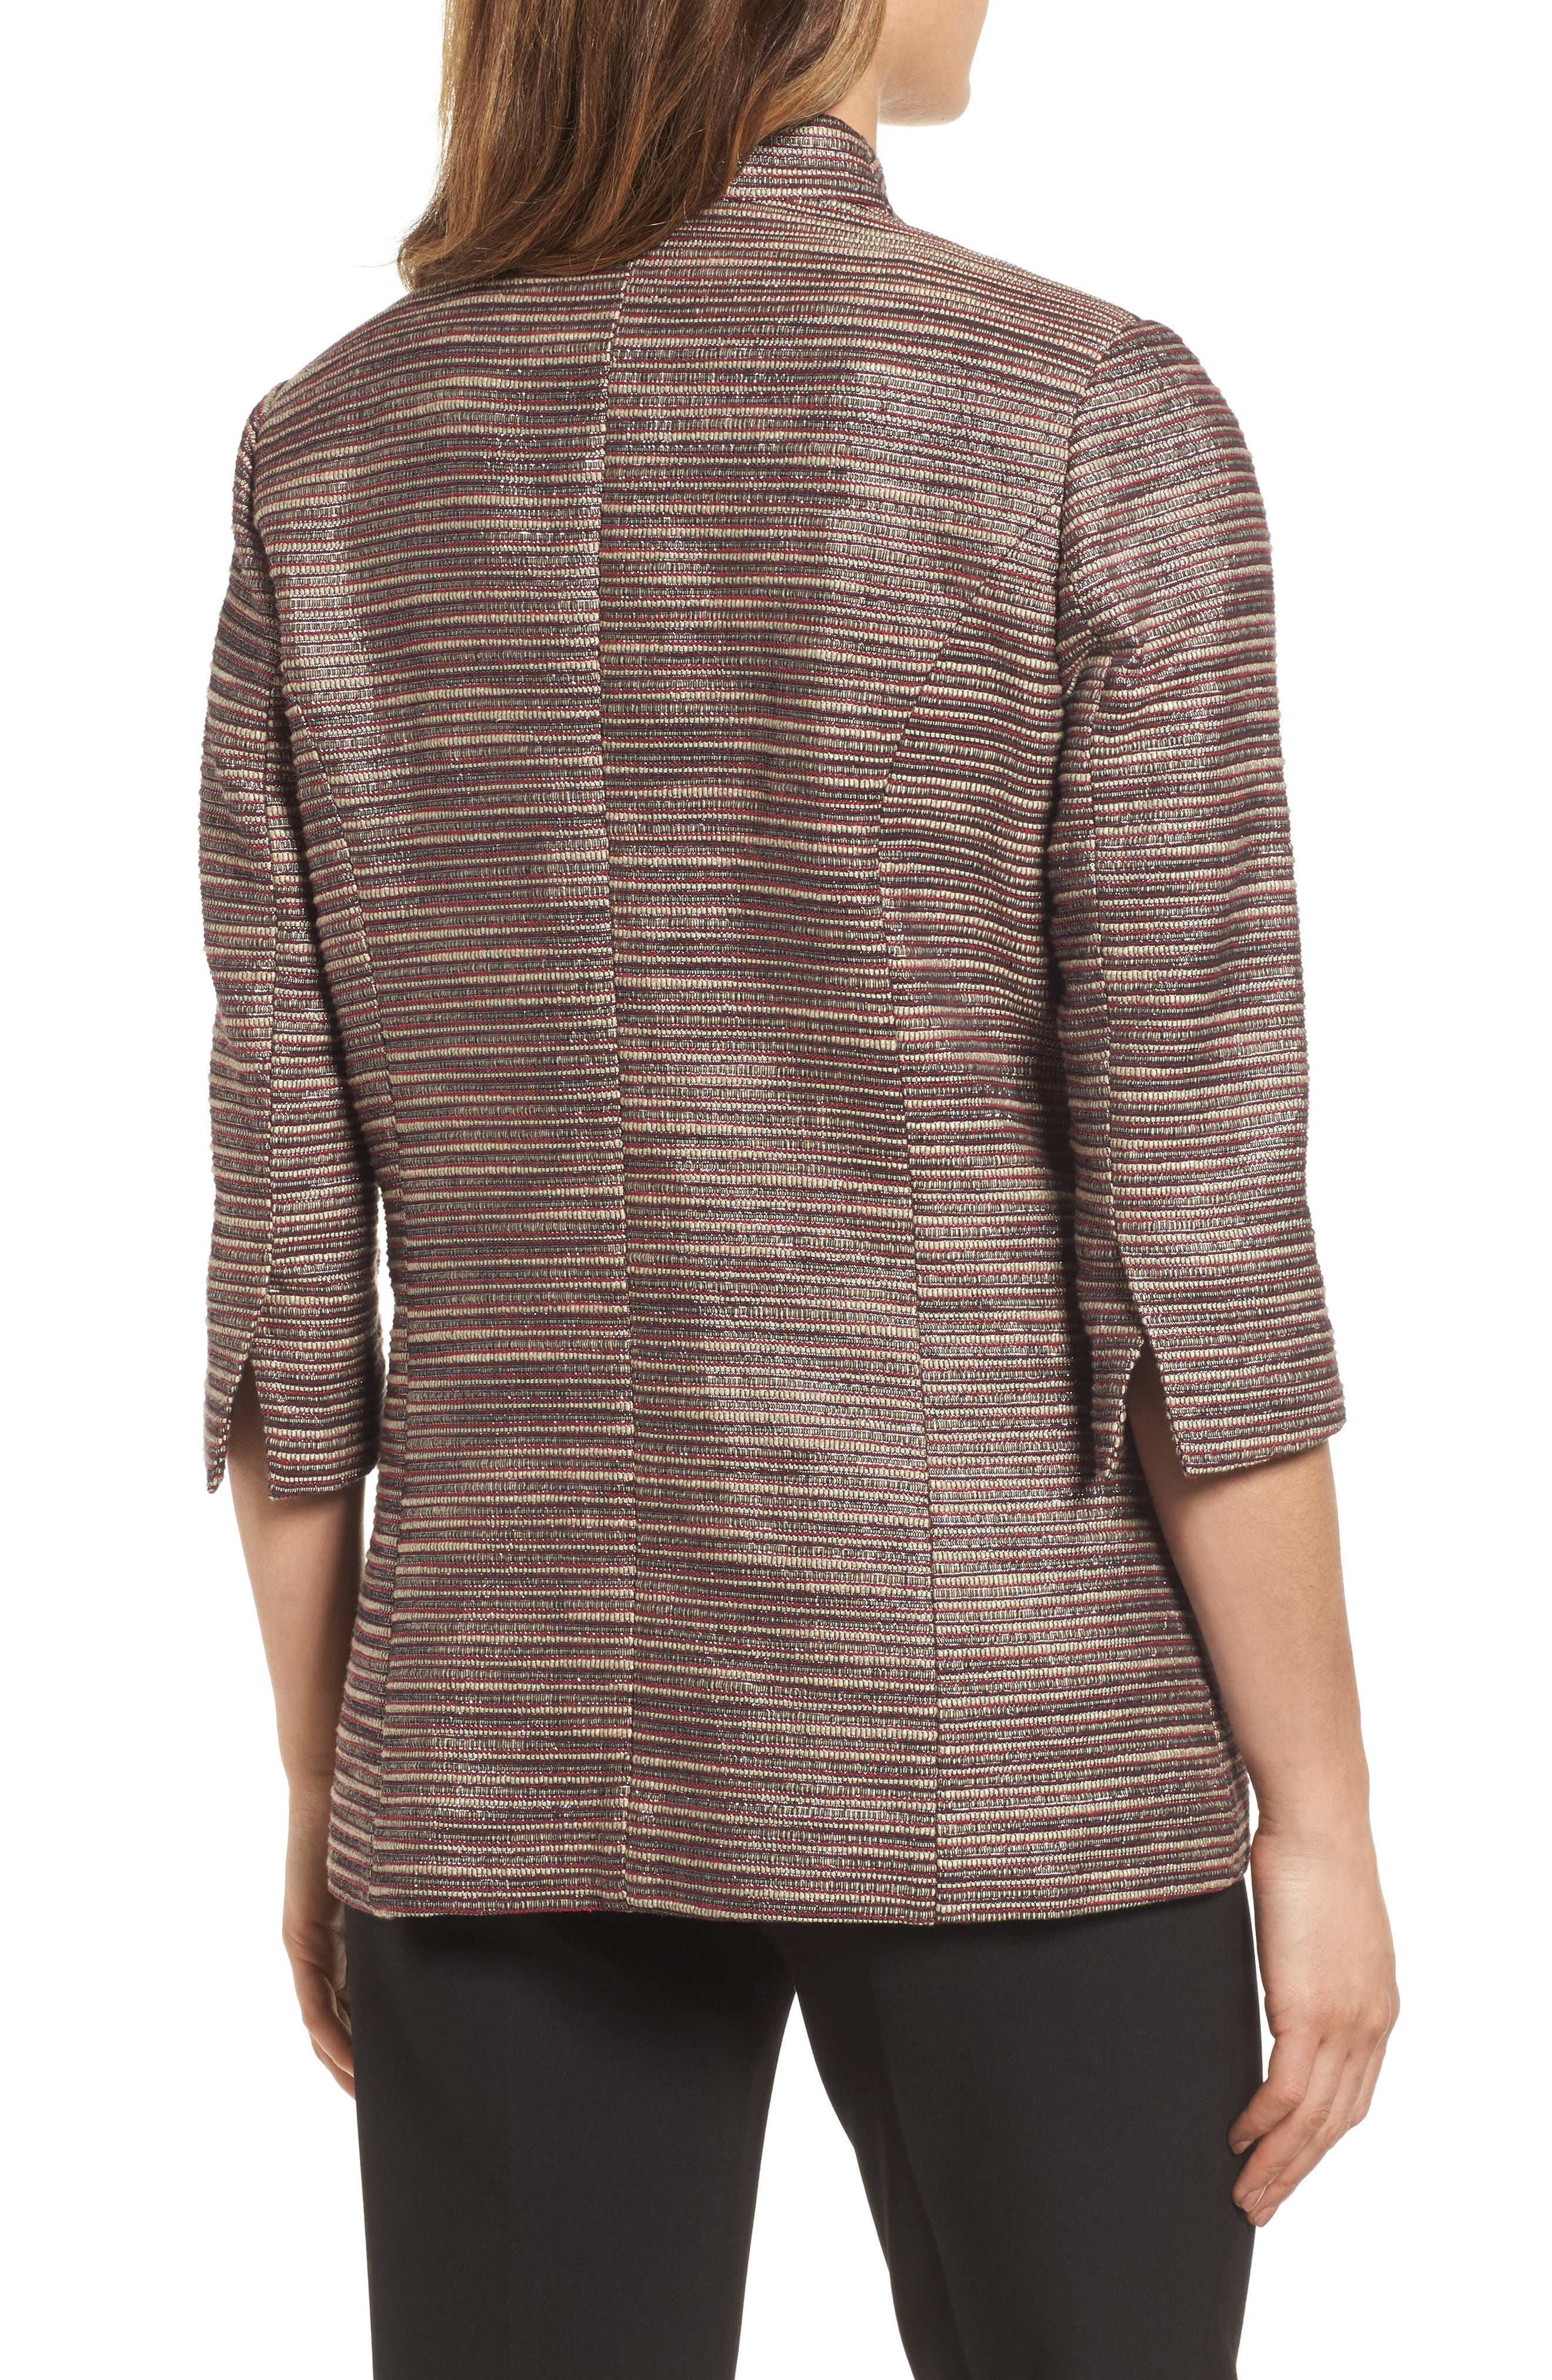 Ribbed Metallic Tweed Jacket,                             Alternate thumbnail 2, color,                             657